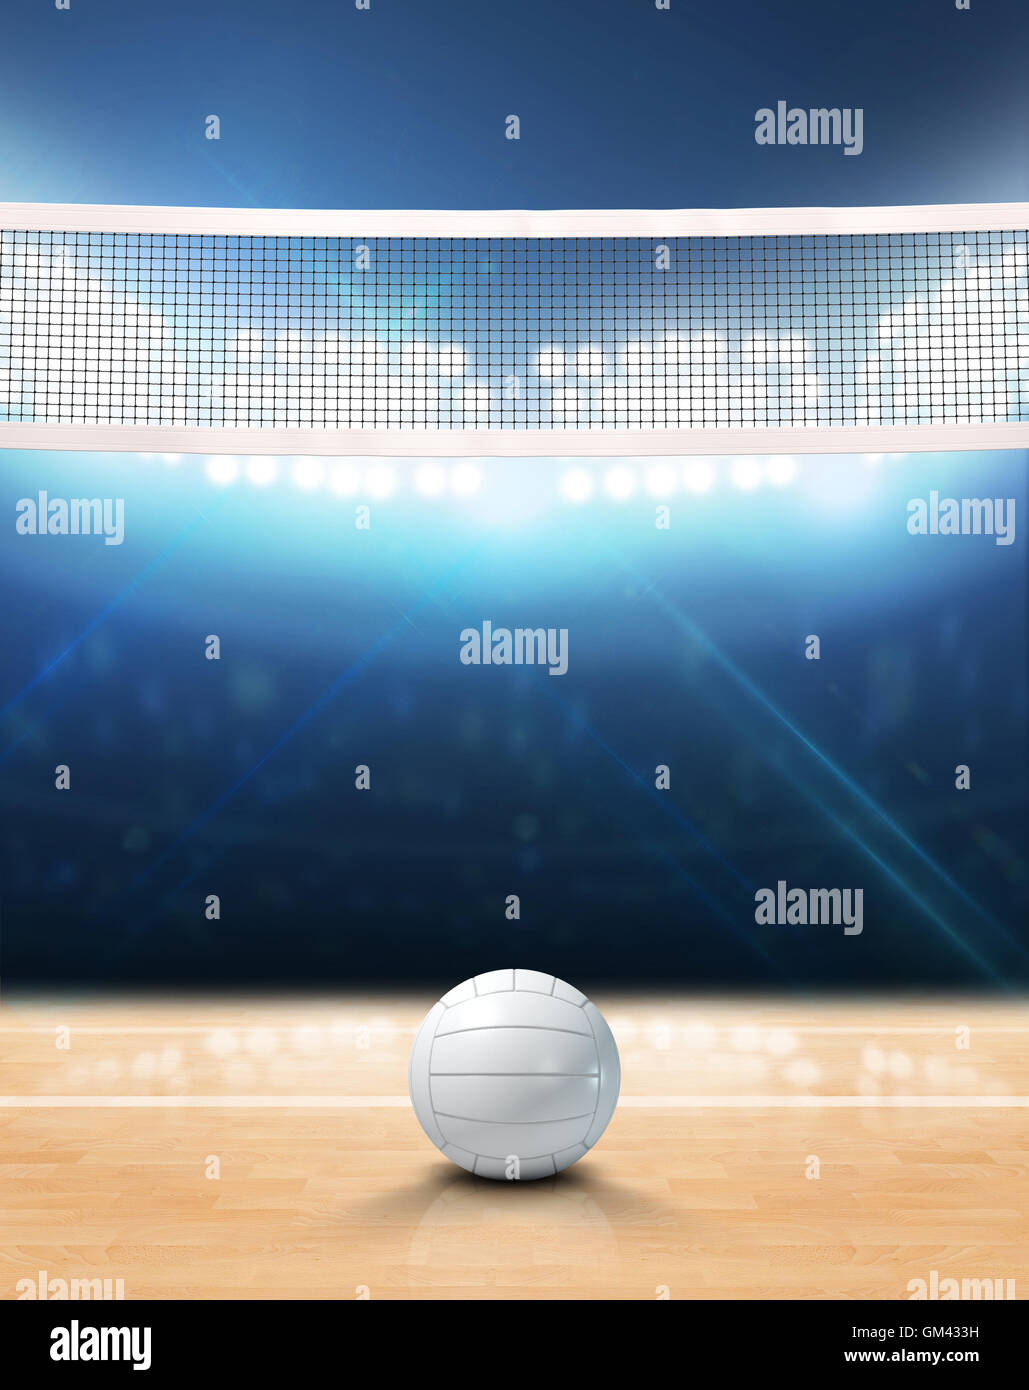 A 3D rendering of an indoor volleyball court with a net and ball on ...